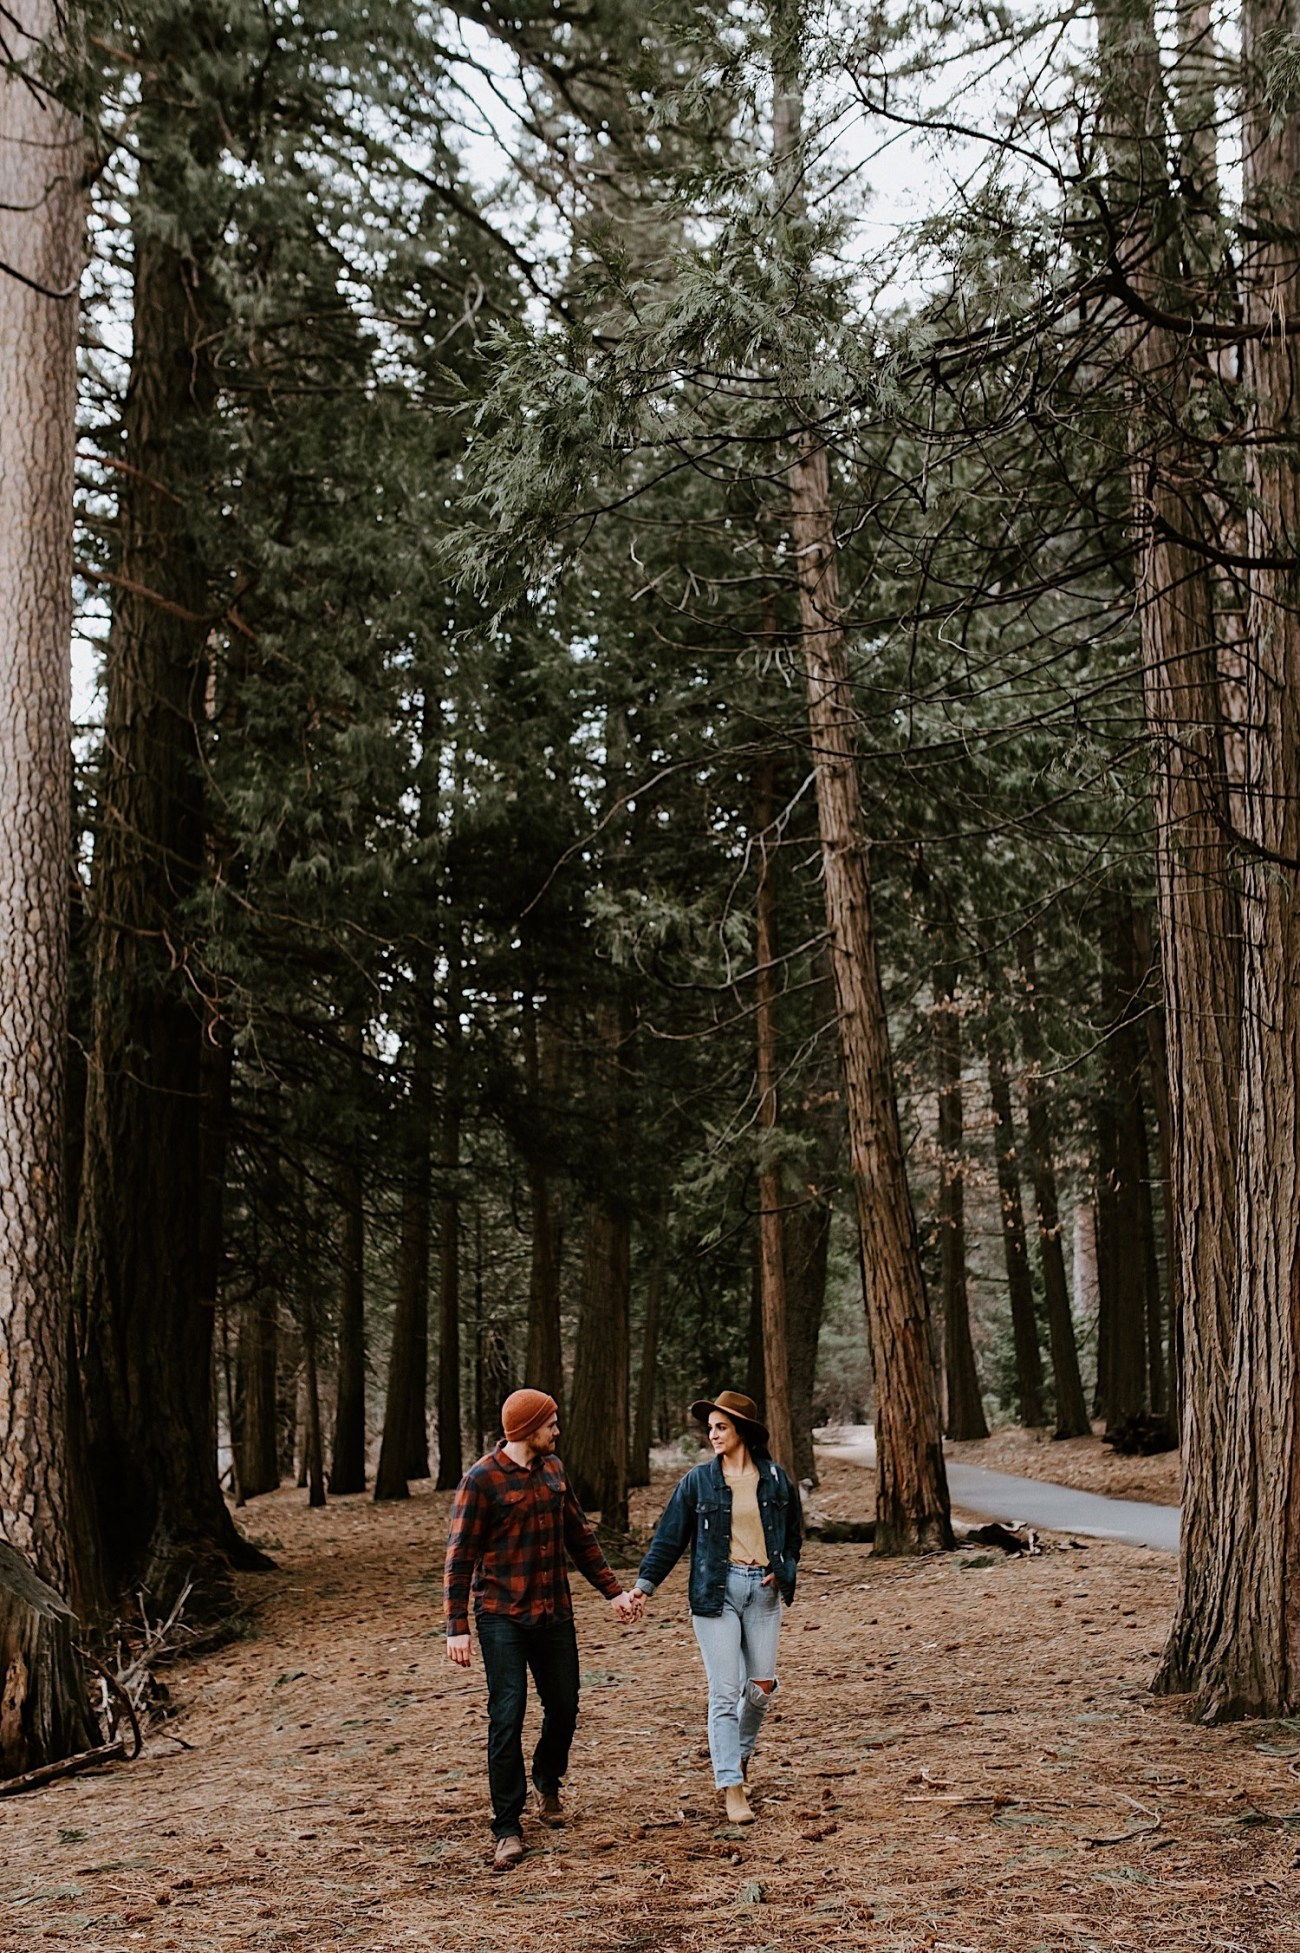 Yosemite Anniversary California Wedding Photographer San Francisco Wedding Photographer Yosemite Elopement 24